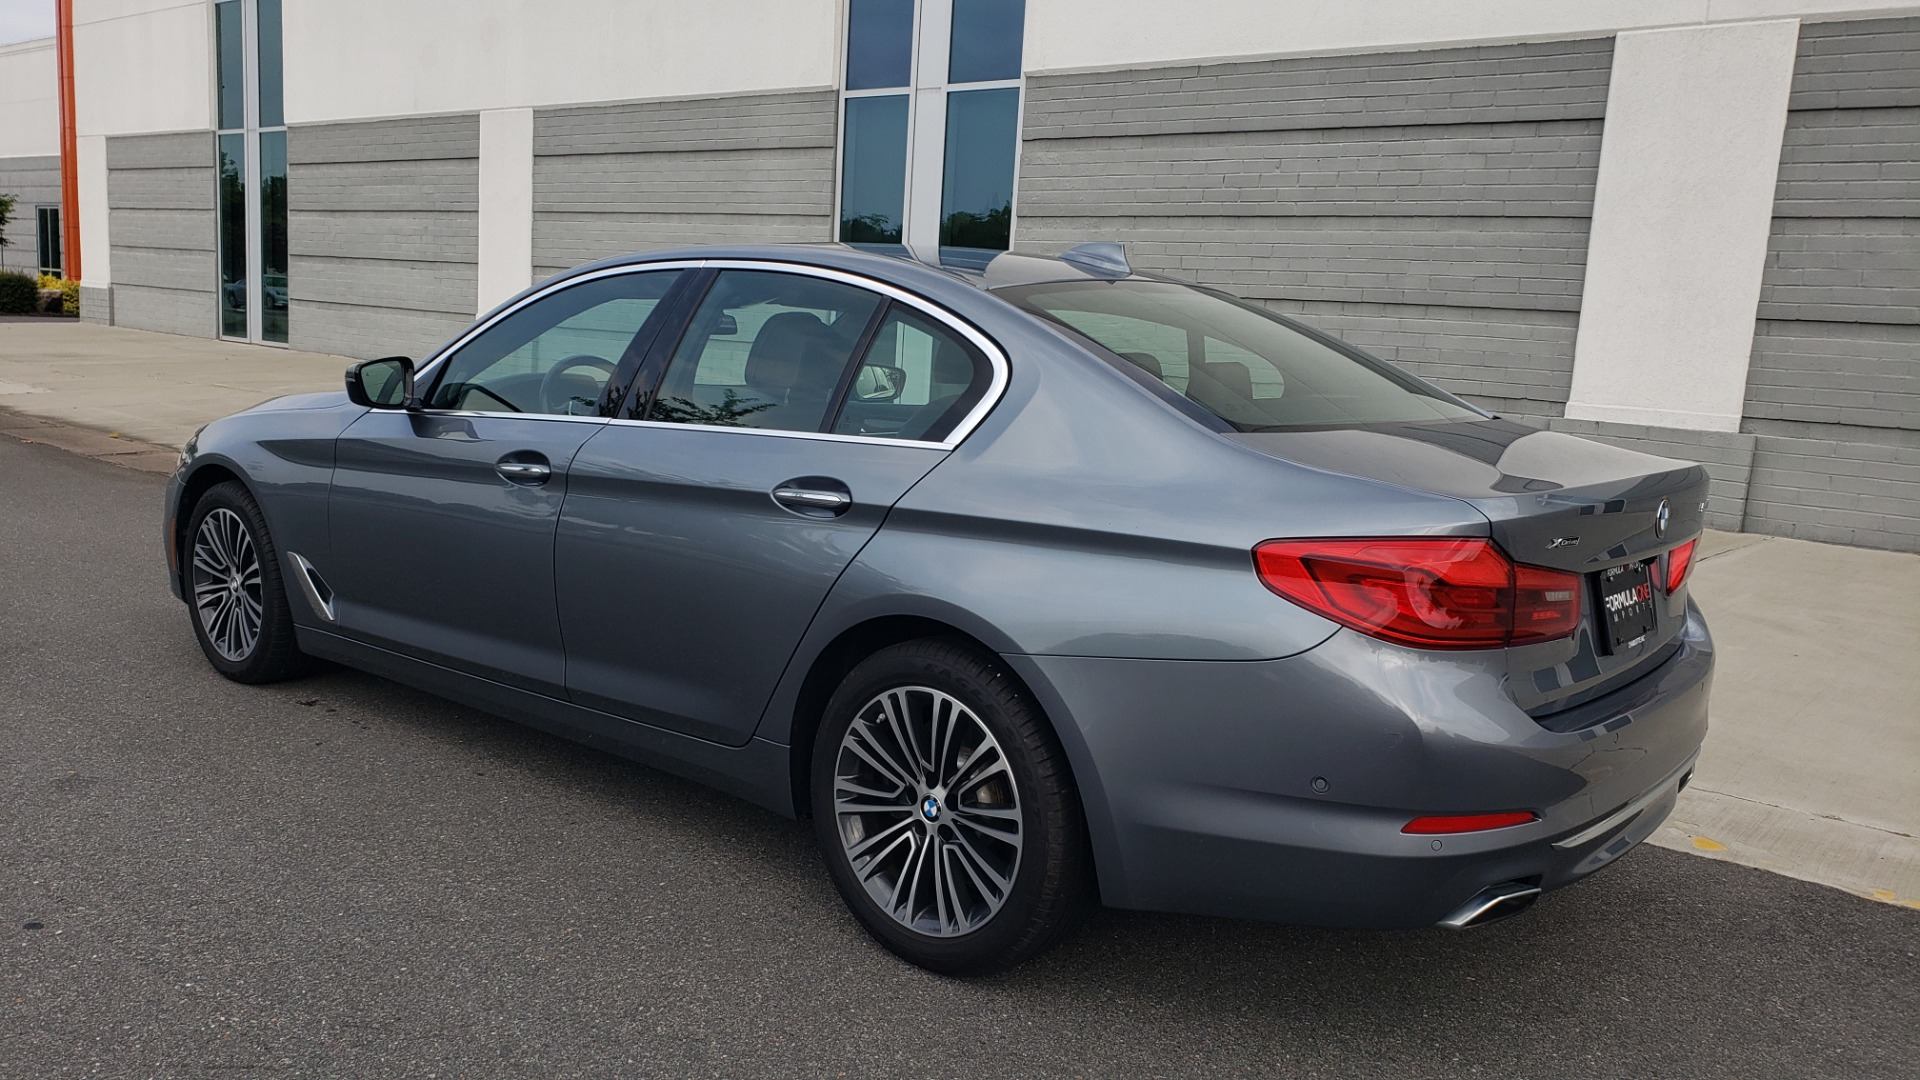 Used 2018 BMW 5 SERIES 540I XDRIVE PREMIUM / EXECUTIVE / LUXURY / H/K SND / REMOTE CONTROL PARKING for sale $40,995 at Formula Imports in Charlotte NC 28227 6